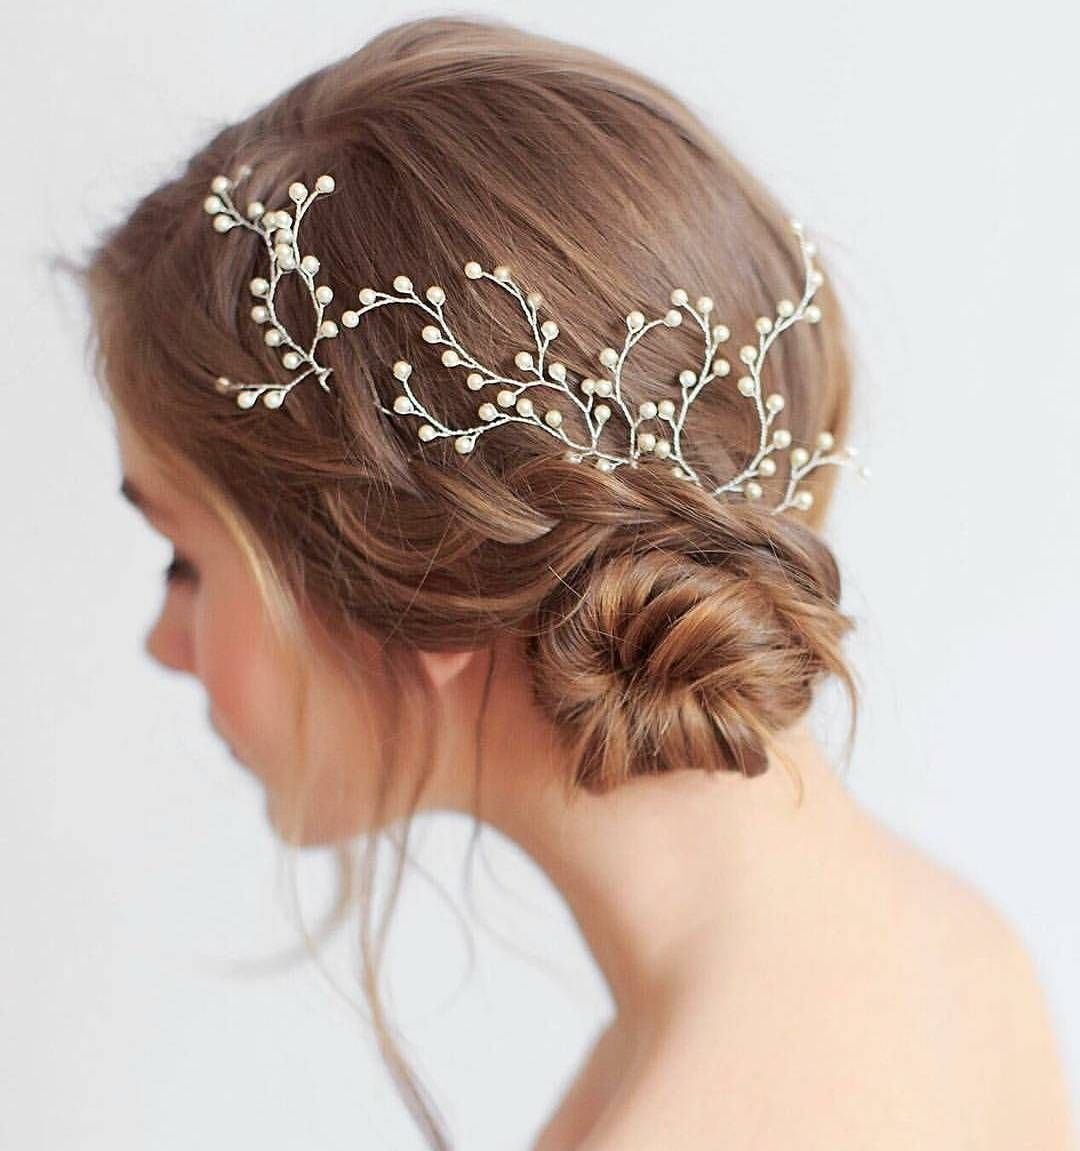 Cute updos work great for a prom night and other formal events